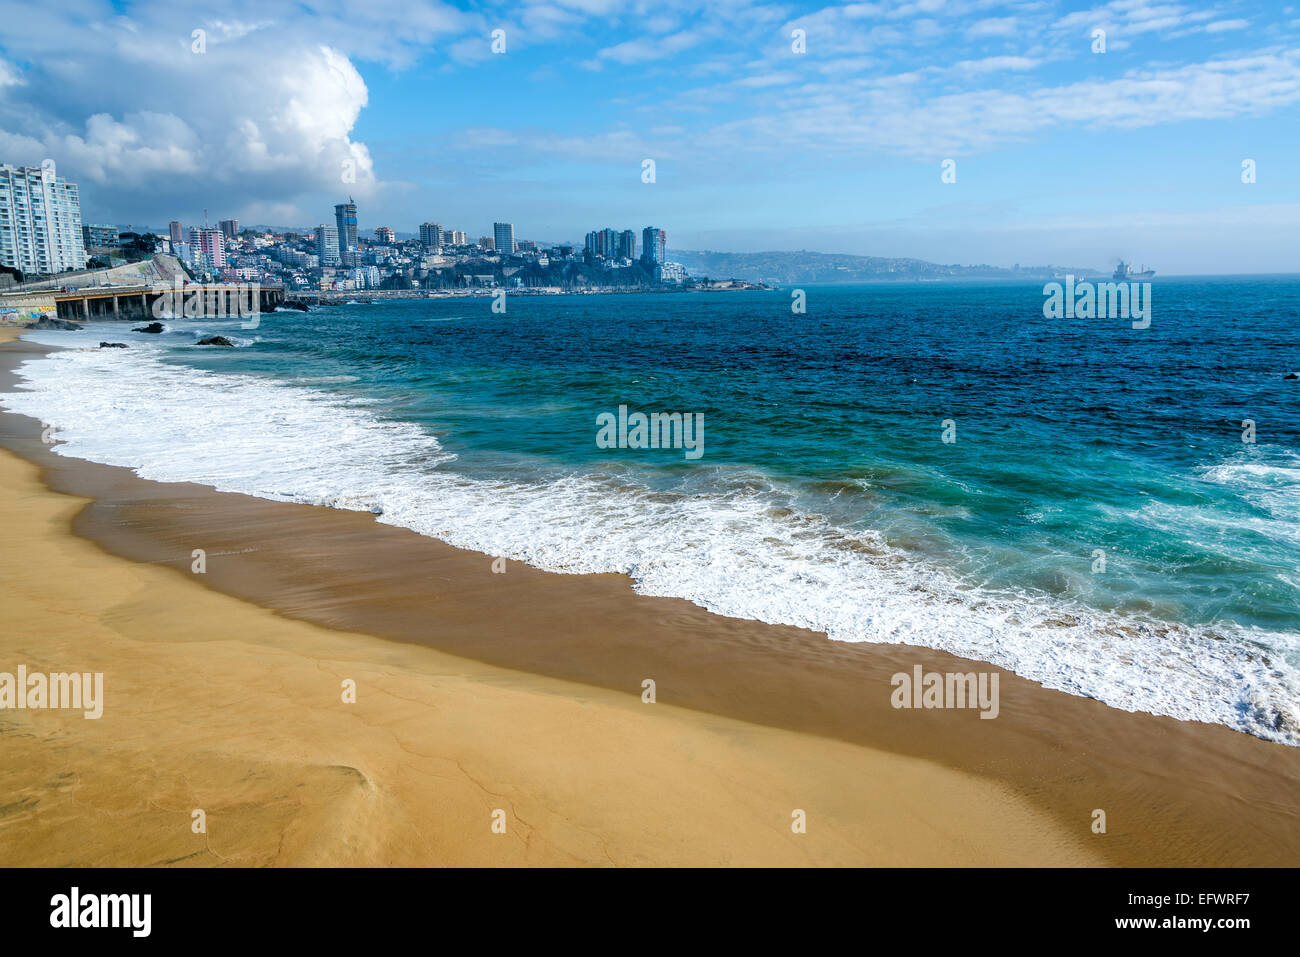 Deserted beach and beautiful turquoise Pacific Ocean water in Vina del Mar, Chile - Stock Image